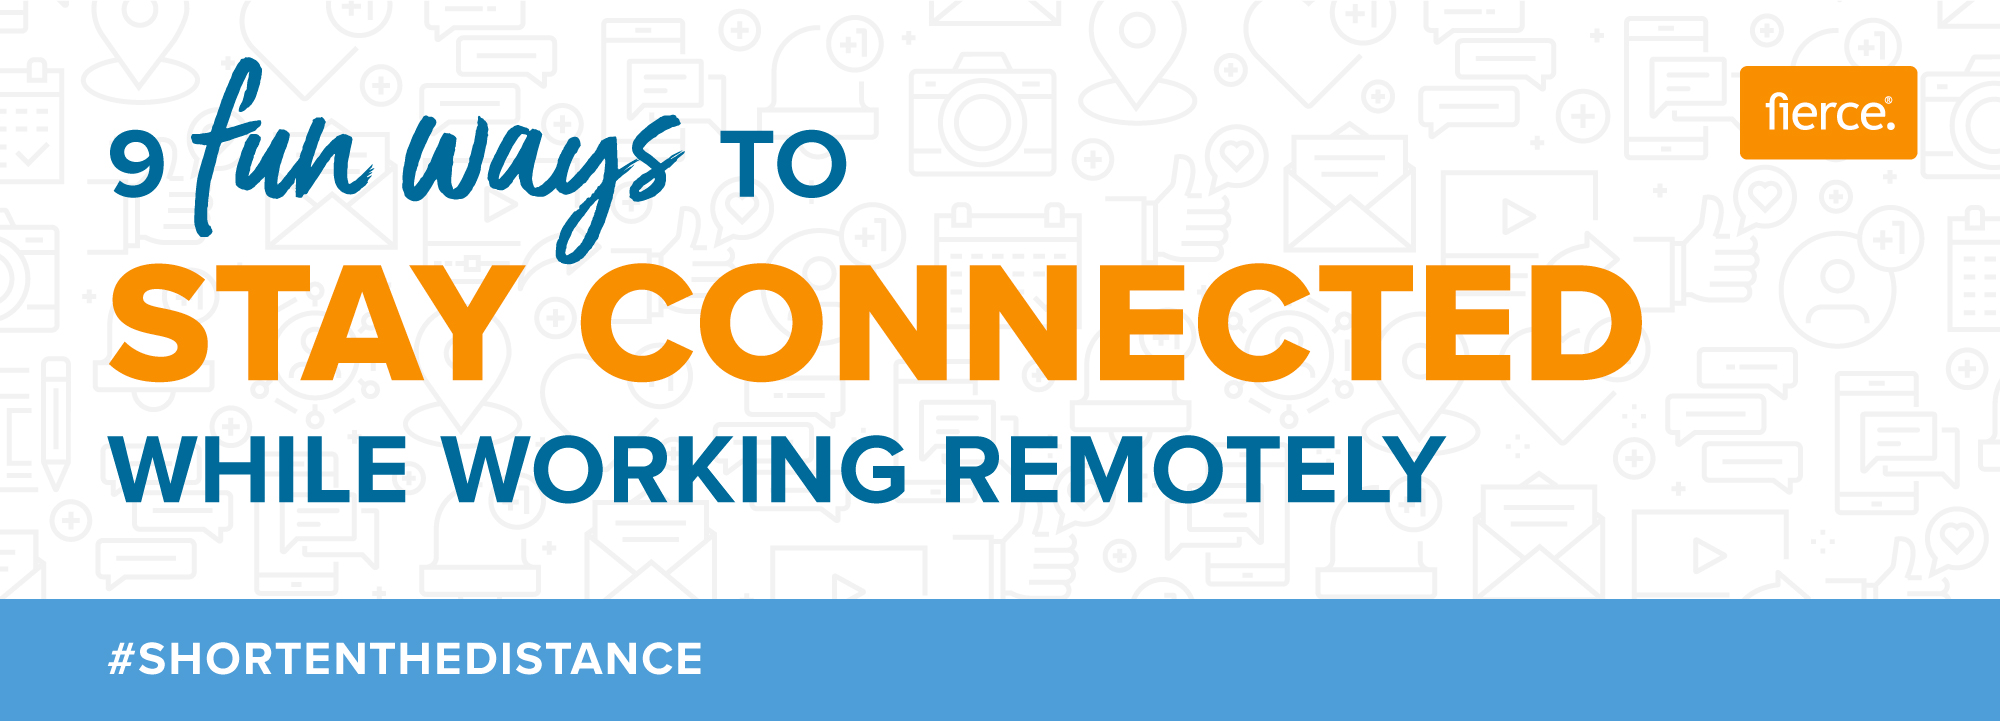 Fierce Conversations Infographic 9 Fun Ways to Stay Connected while Working Remotely